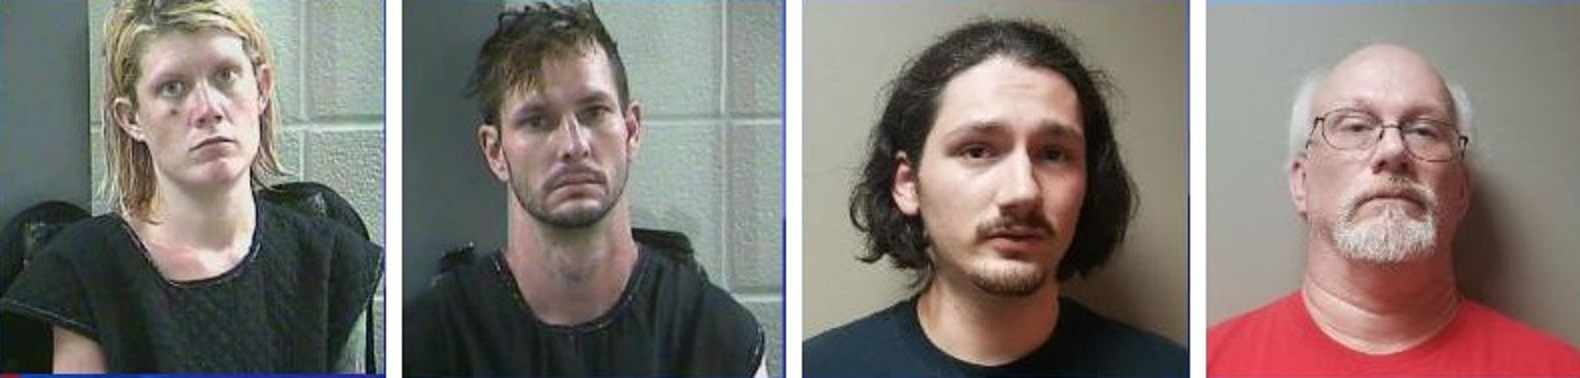 Laurel County Grand Jury To Hear Case Of 4 Accused In Stabbing Death